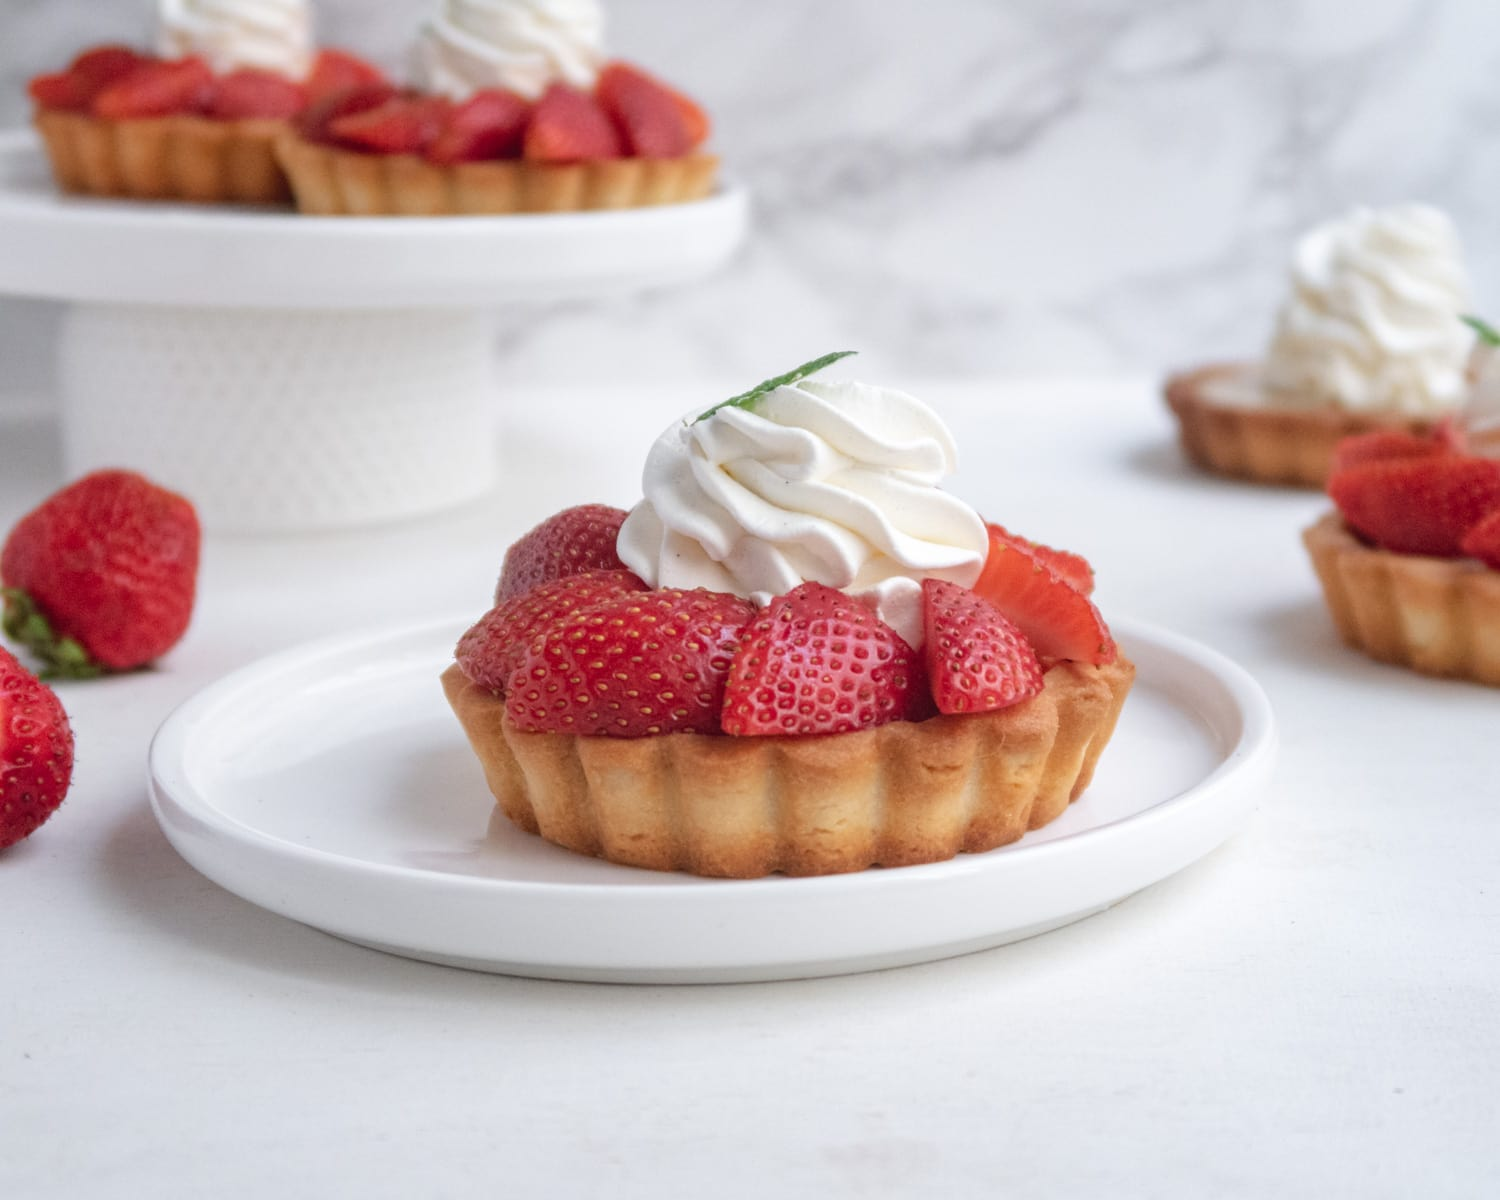 side view of a vegan fresh strawberry and rhubarb tartlets on a plate with more tartlets in the background